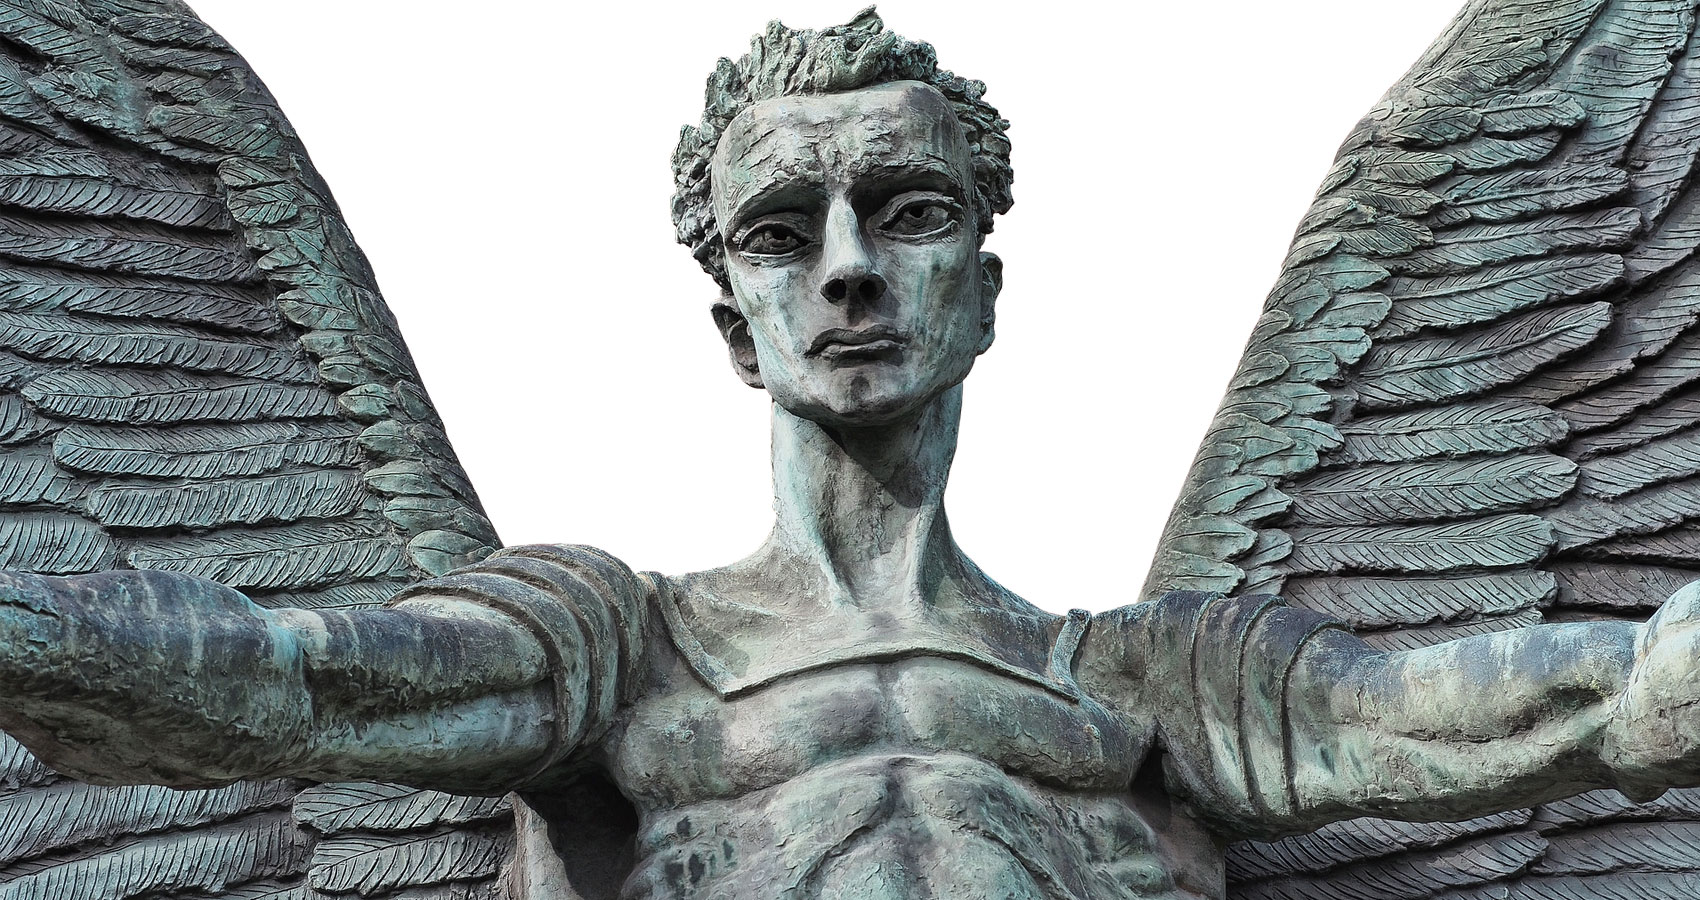 Angel, a poem written by Gary EDward Allen at Spillwords.com